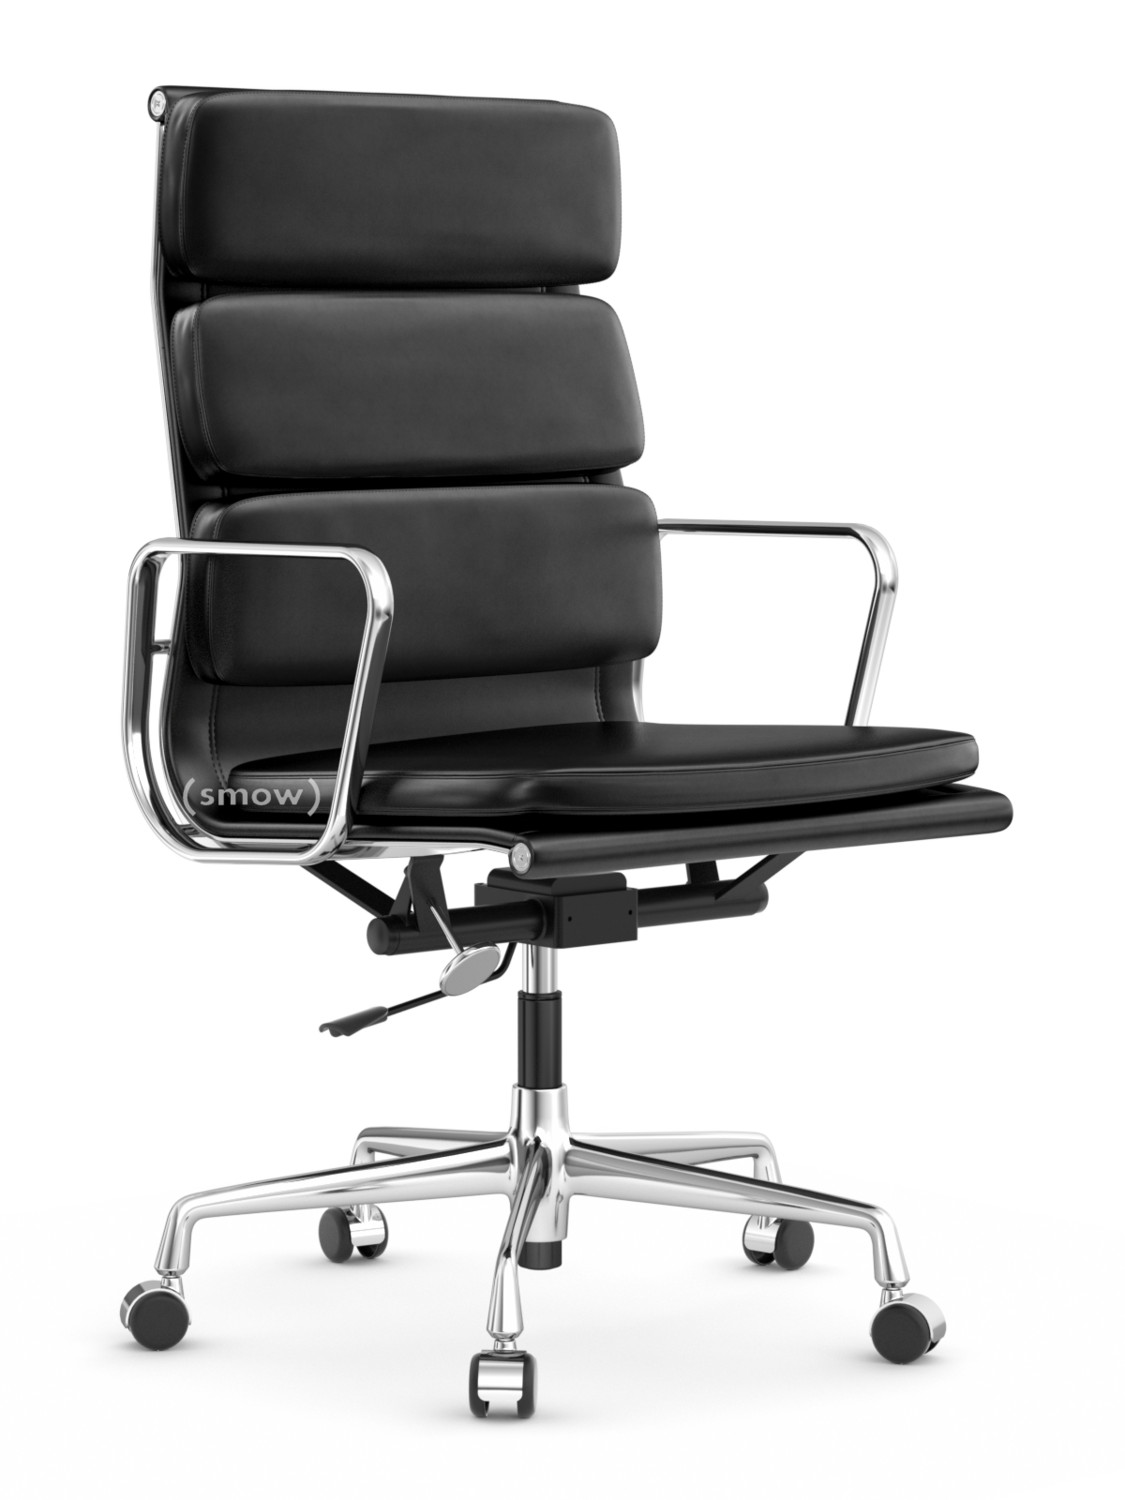 Vitra soft pad group ea 219 chrome plated nero by for Eames chair vitra replica